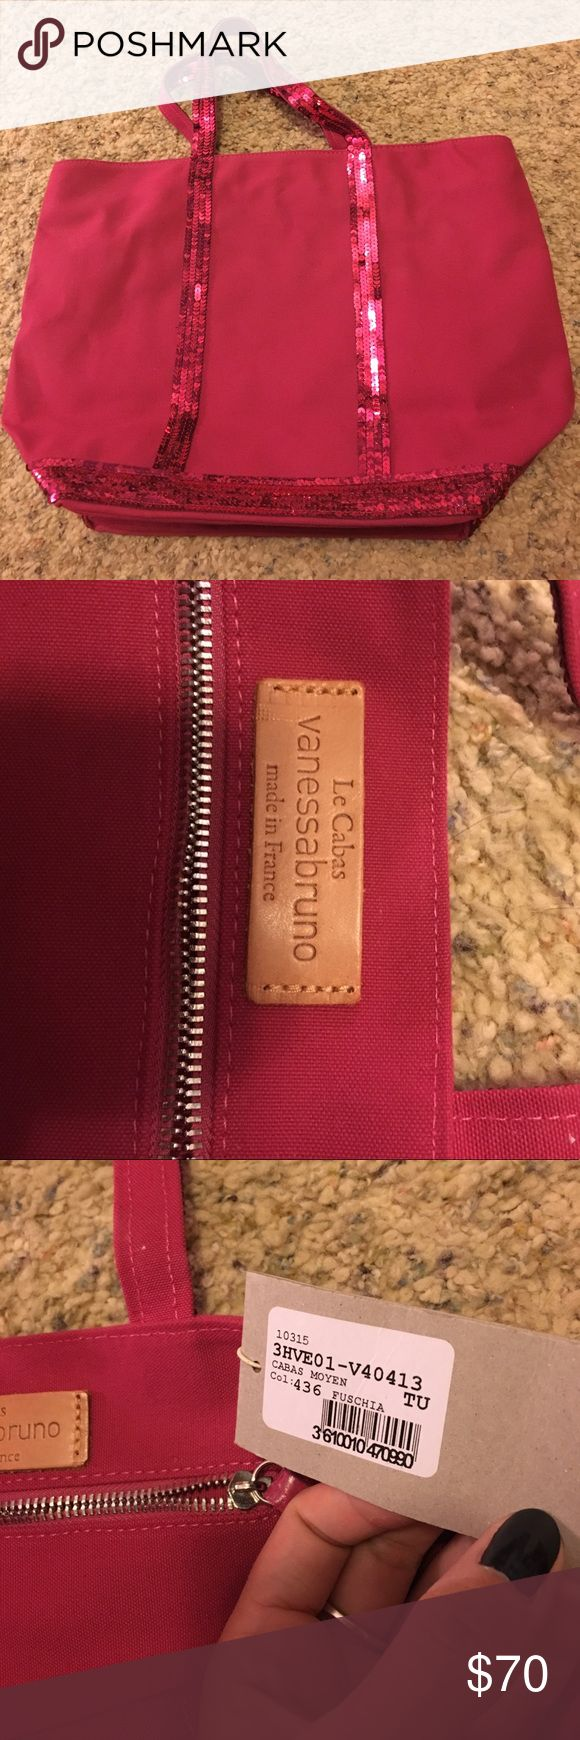 """Vanessa Bruno La Cabas Bag This is a brand new (with tags) Vanessa Bruno purse. It is fuchsia with fuchsia sequins. It can fit a 13"""" Mac with a case on as well as many other things! Open to all offers! Vanessa Bruno Bags Shoulder Bags"""